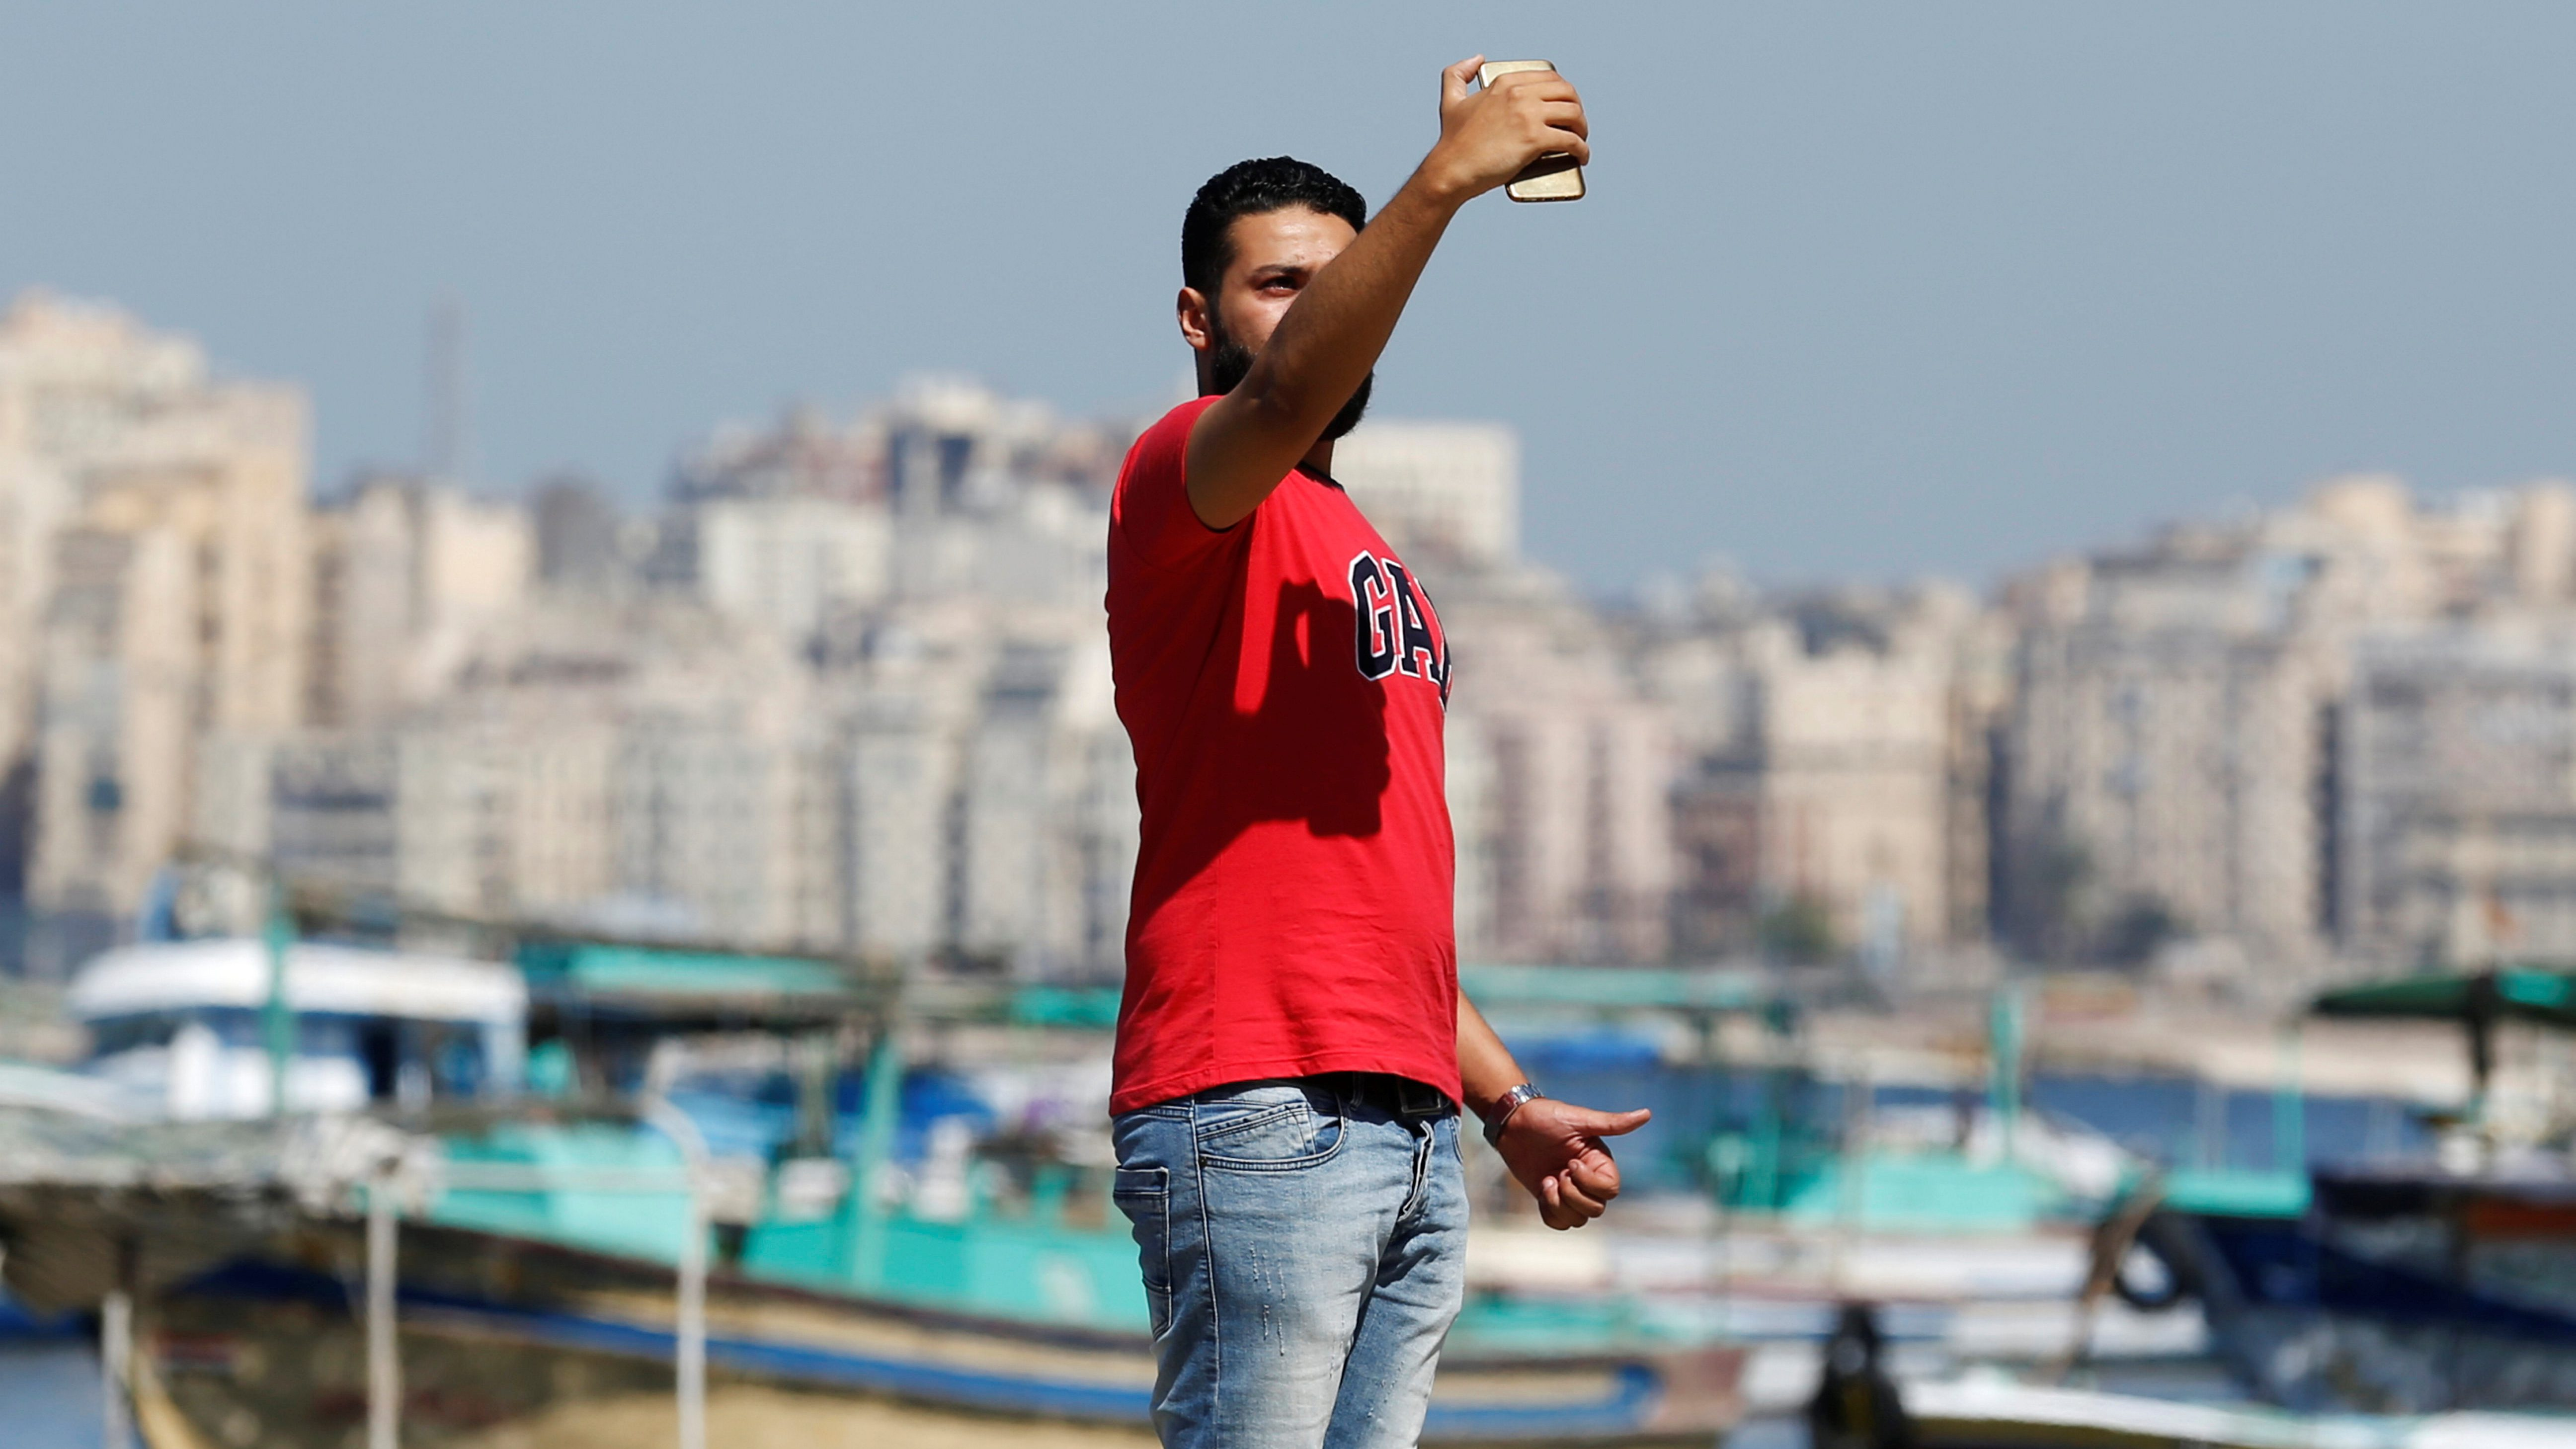 A man takes a selfie picture with his mobile phone along the coast in the Mediterranean city of Alexandria, Egypt